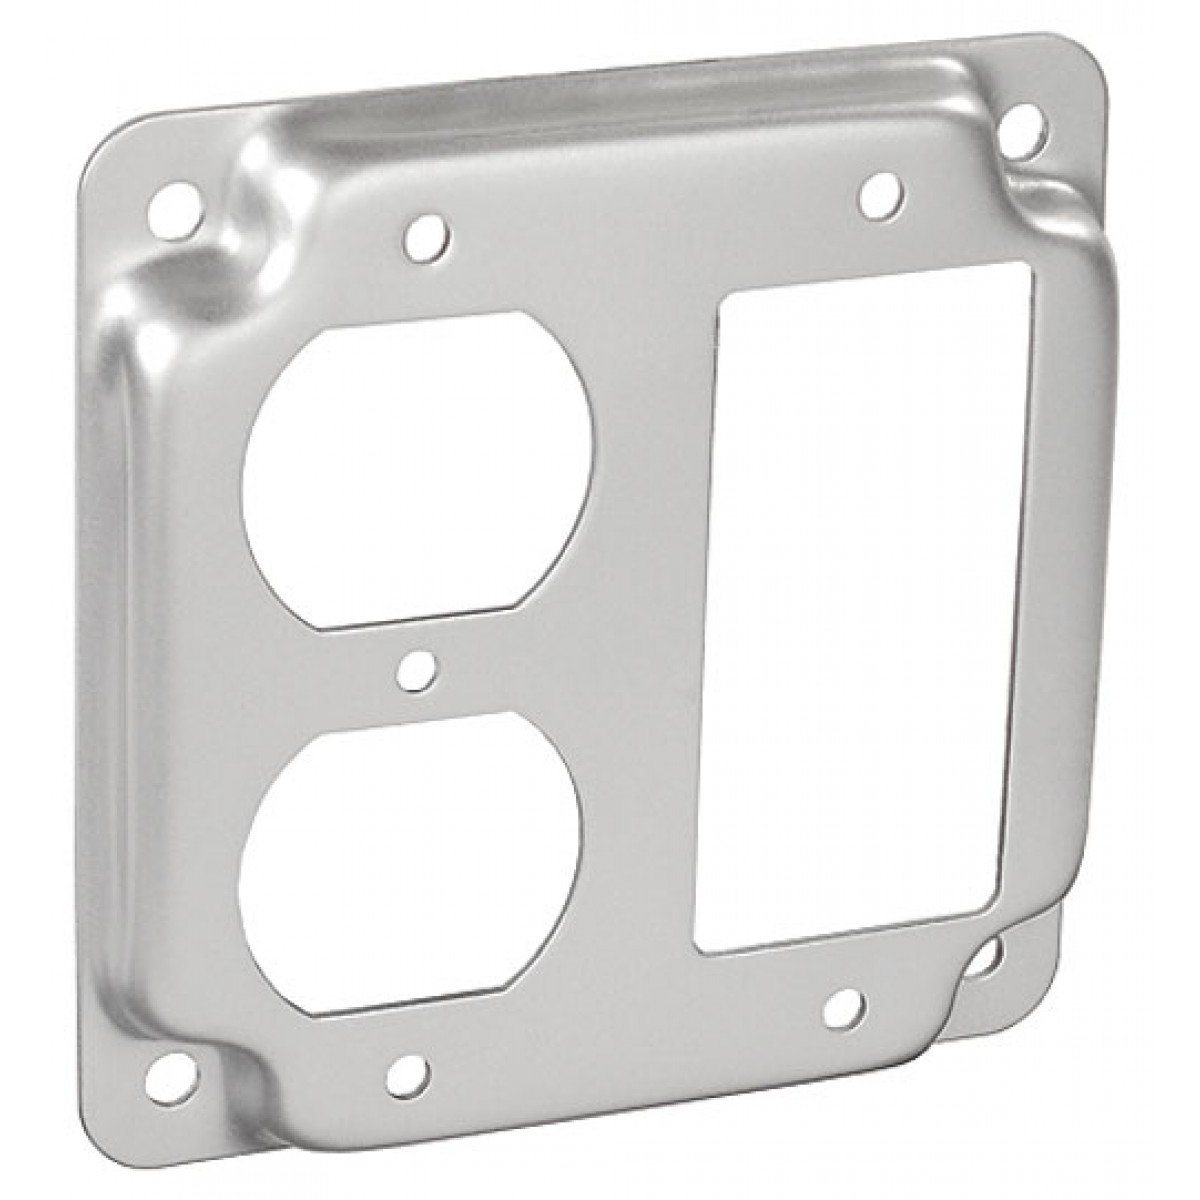 5 Pcs, Steel 4 Square, 1/2 In. Raised Duplex Receptacle & Decorative Or Gfci Receptacle Industrial Surface Cover for Quick Installation of Devices & Switches